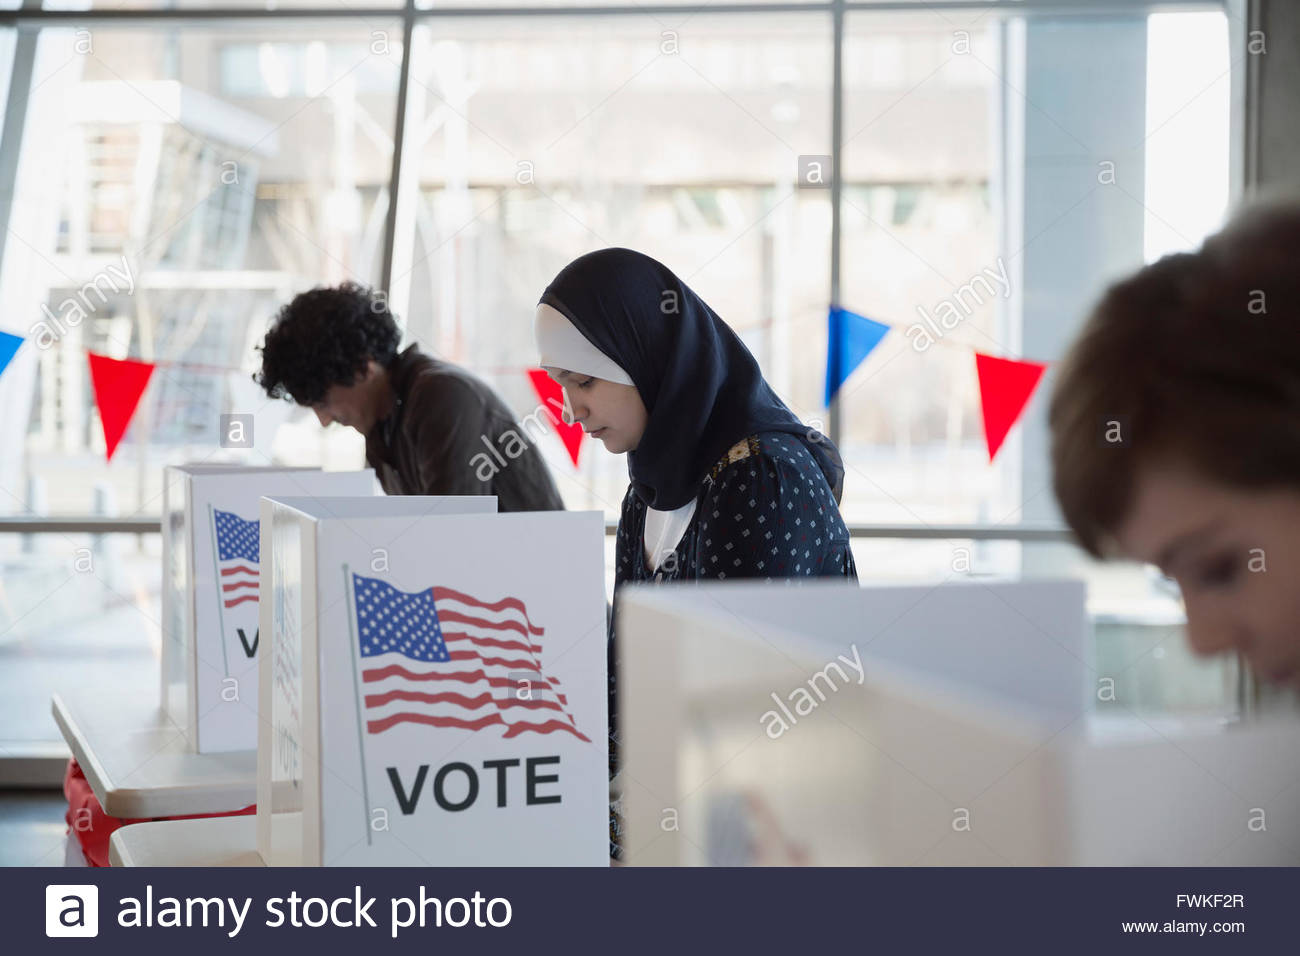 Woman in hijab in voting booth polling place - Stock Image